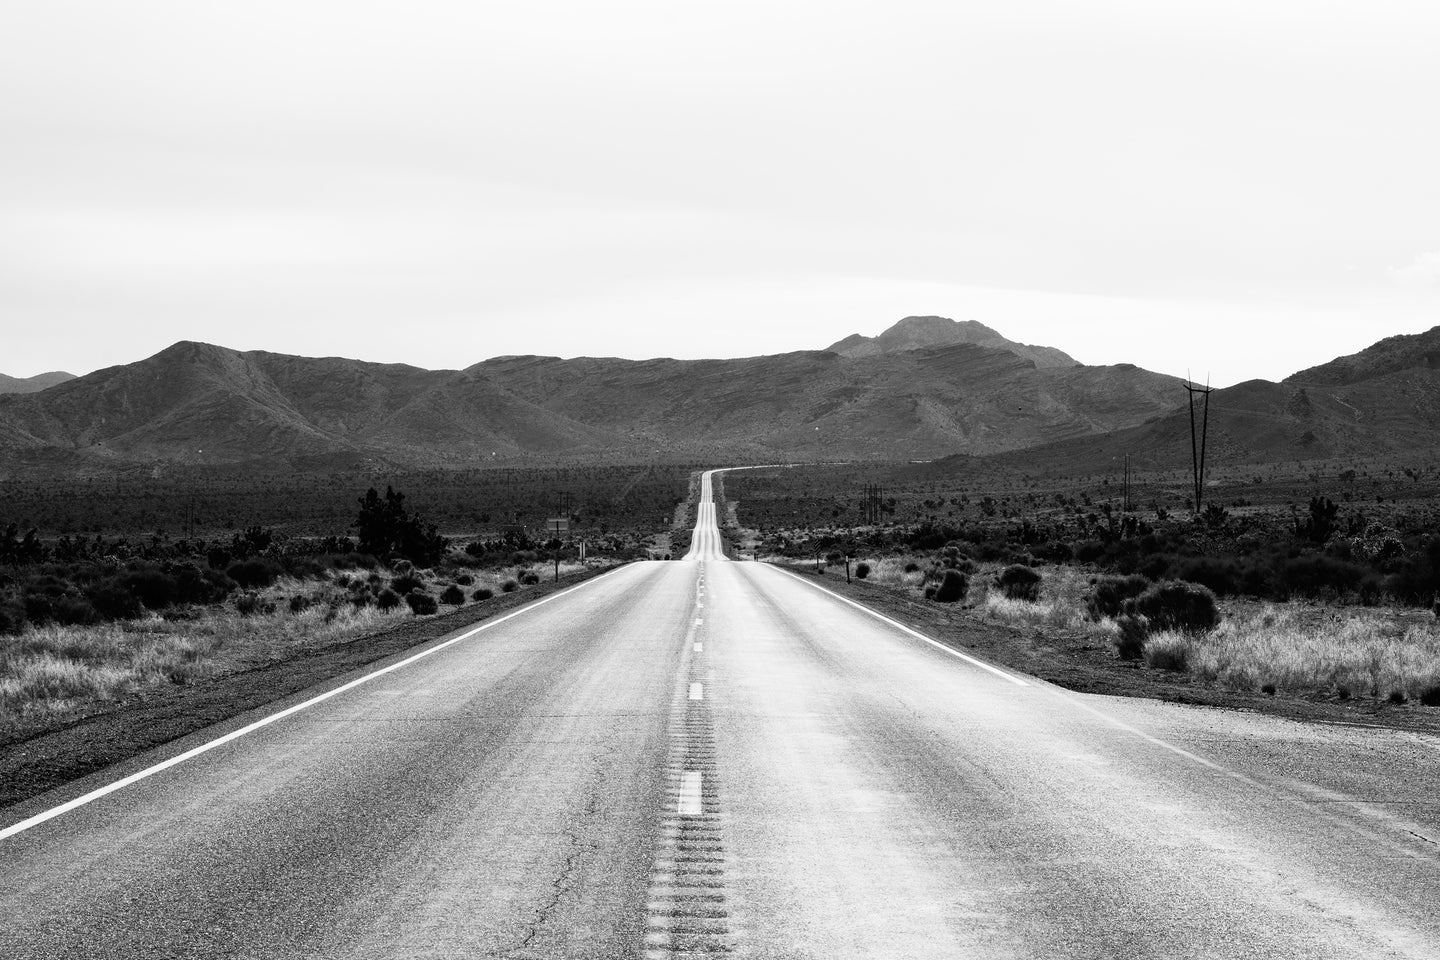 Grayscale photo of road - W-Photographie